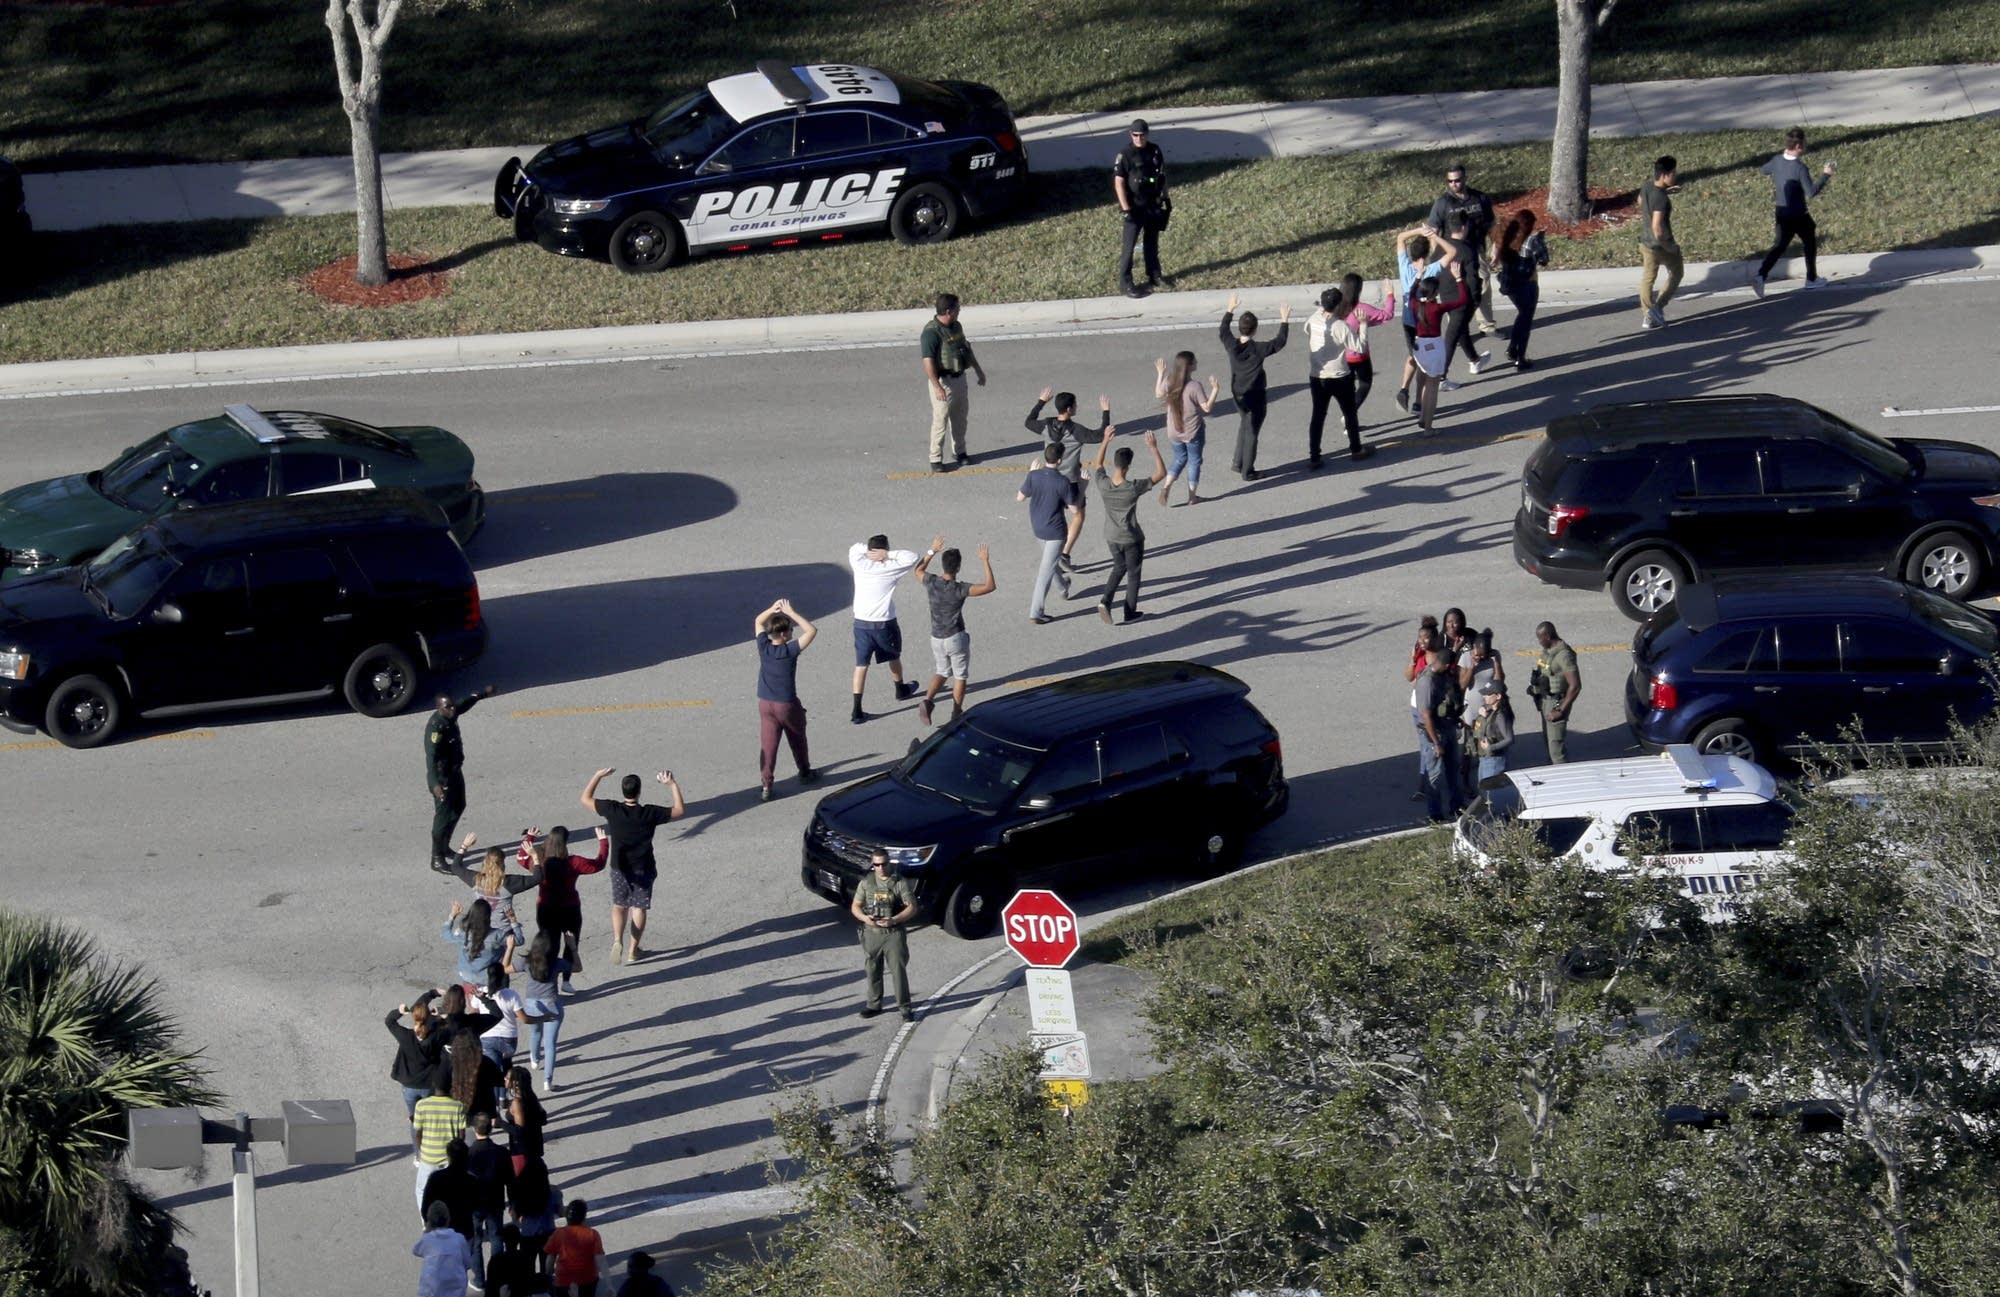 Broward County Sheriff Releases Video Of Deputy's Inaction during Parkland Shooting